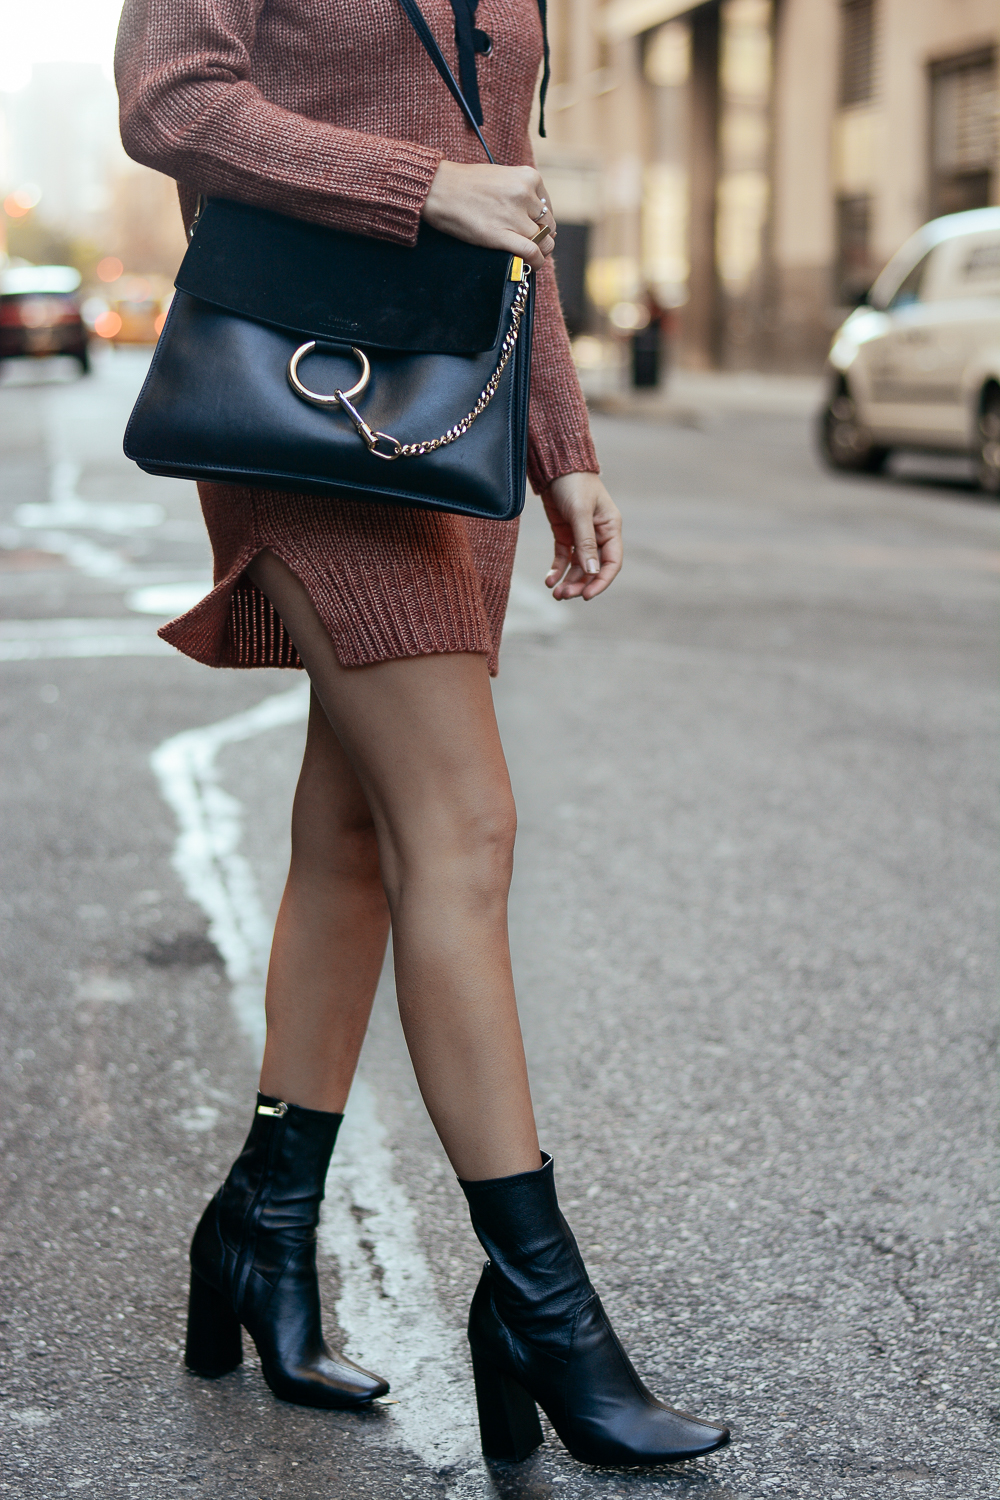 Zara booties and Chloe Faye Purse